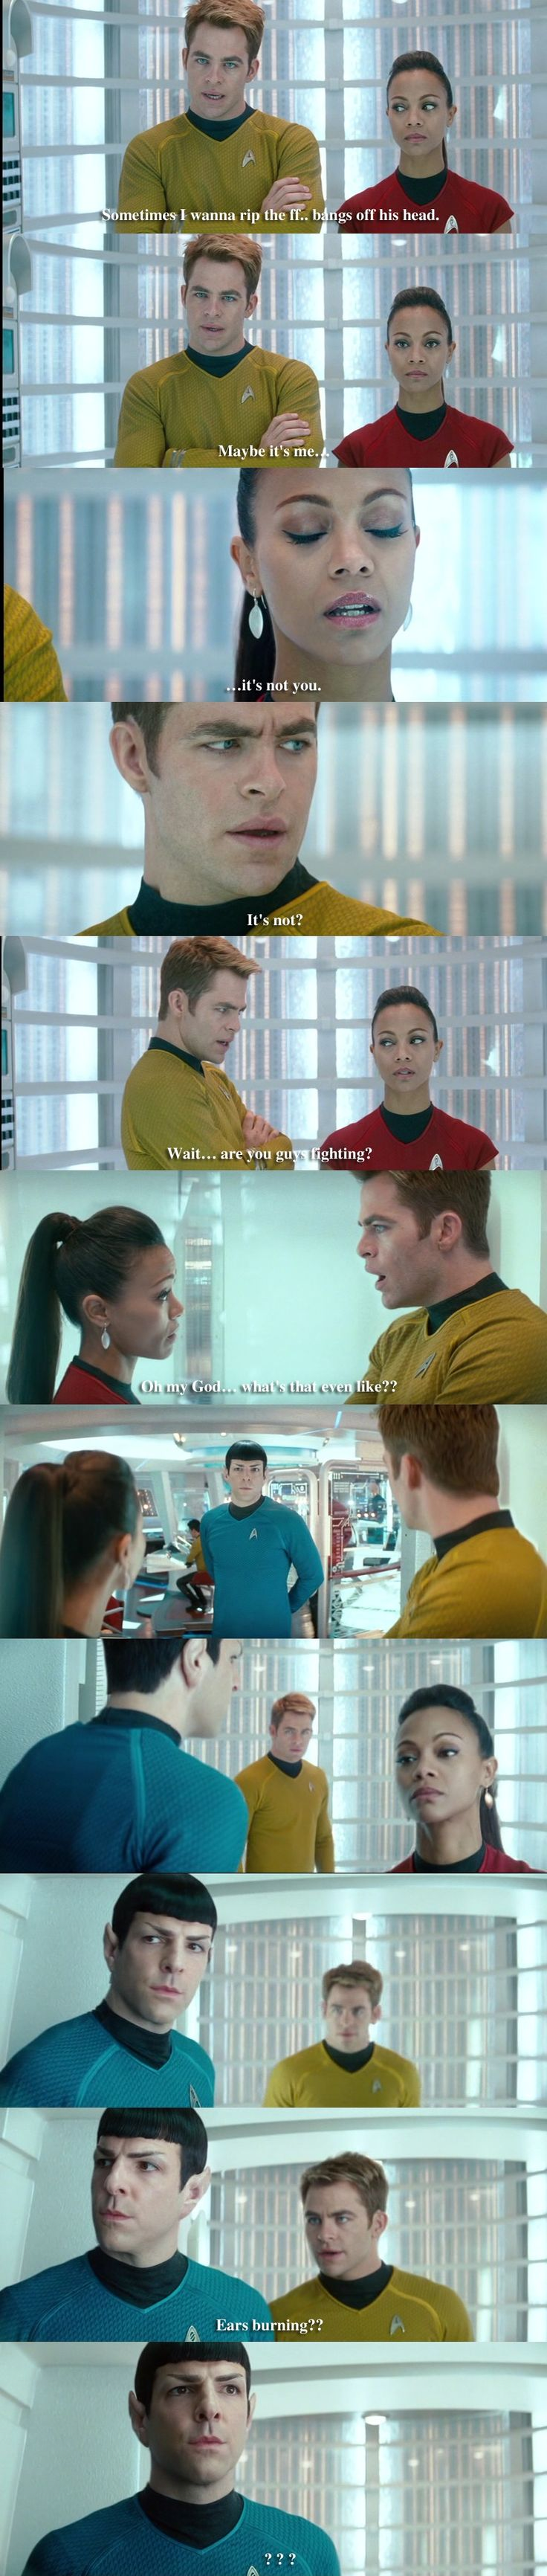 "Star Trek: Into Darkness. ""Ears burning, poor Spock?"" (2013, J.J. Abrams; starring Chris Pine, Zoe Saldana, Zachary Quinto)"